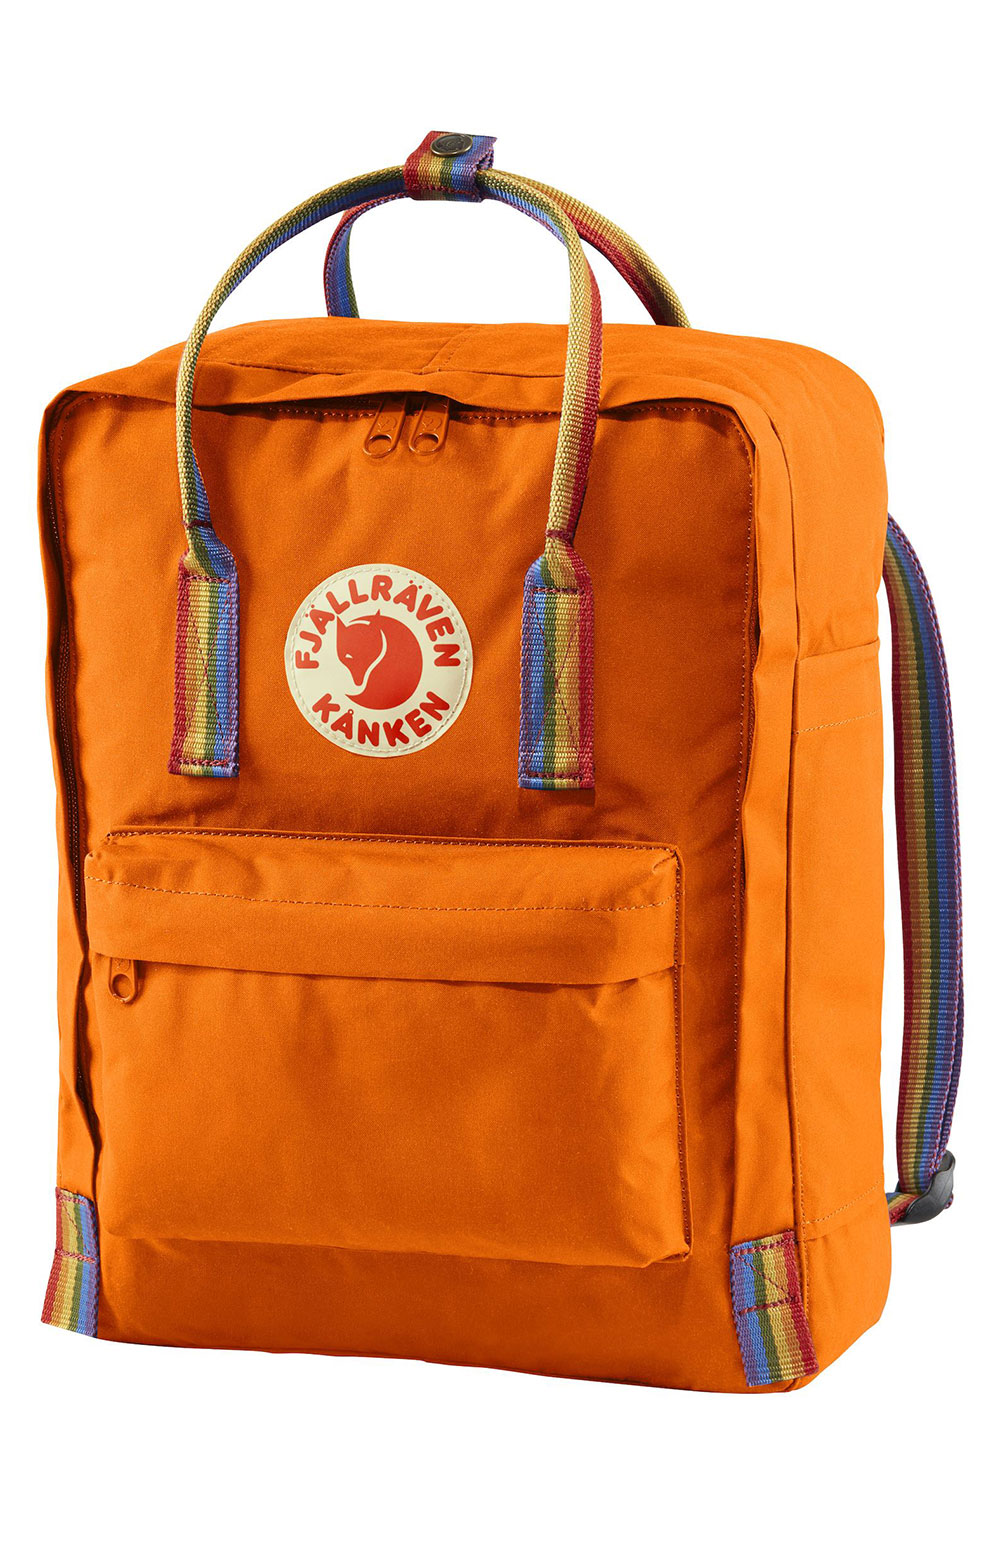 Kanken Rainbow Backpack - Burnt Rainbow/Rainbow Pattern 2